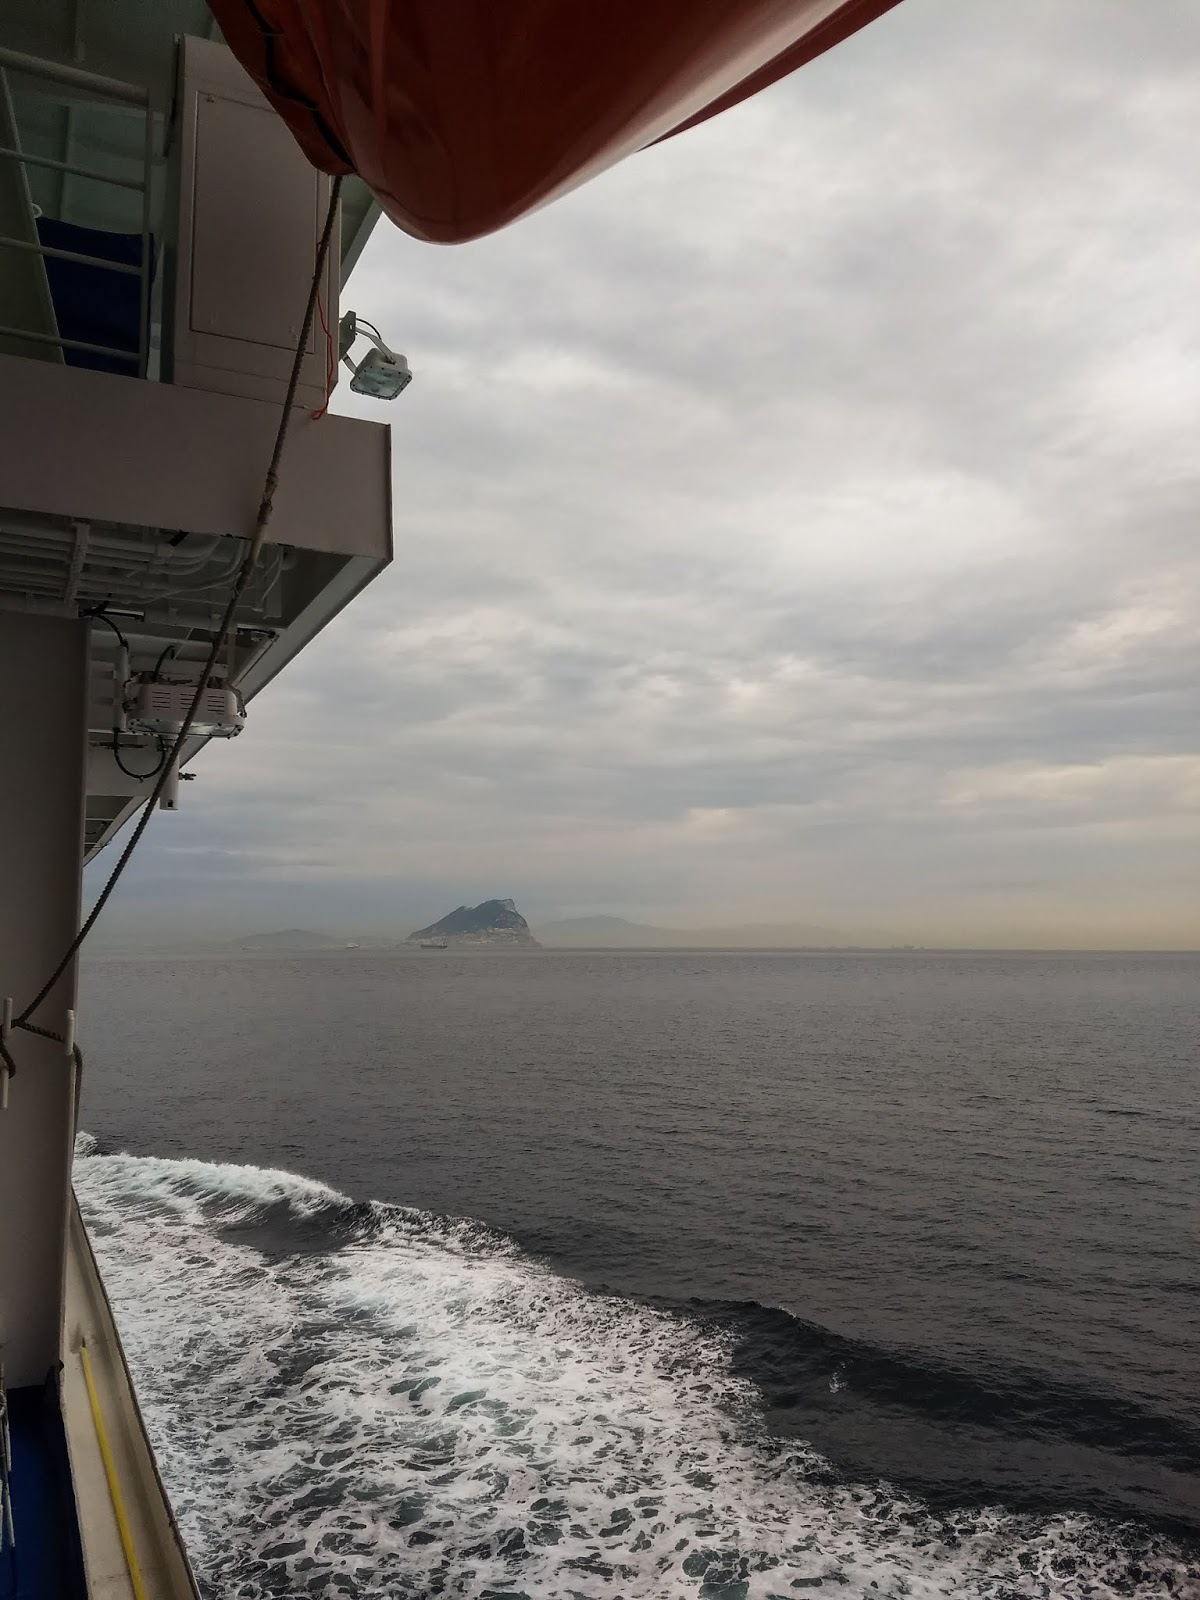 View of the Rock of Gibraltar from the Sapphire Princess cruise ship.